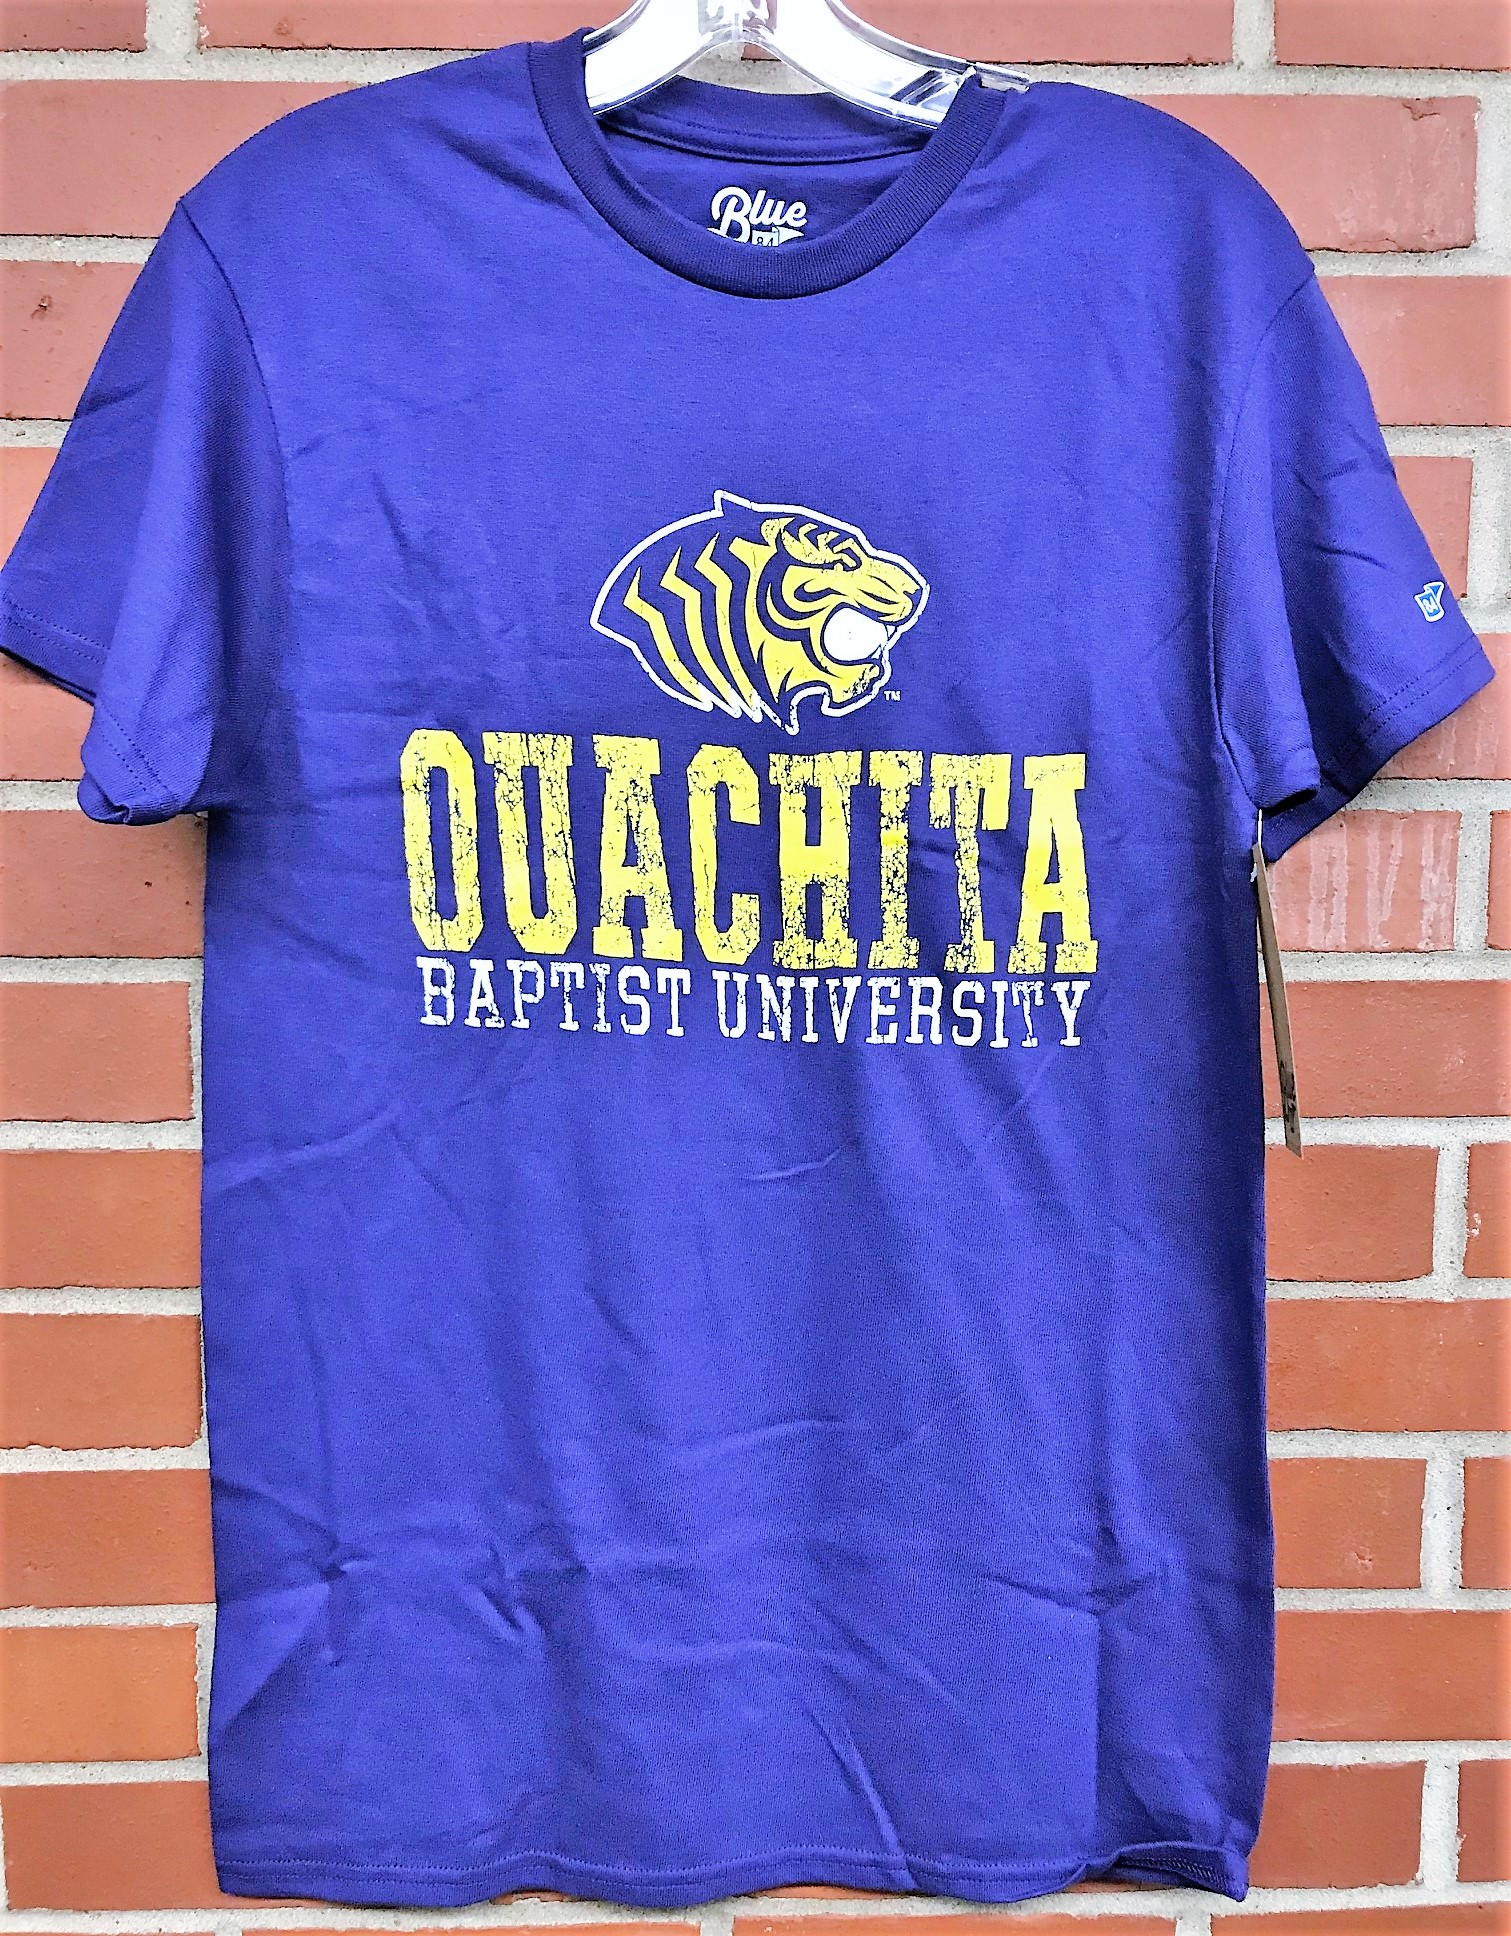 OUACHITA BAPTIST UNIVERISTY SS TEE